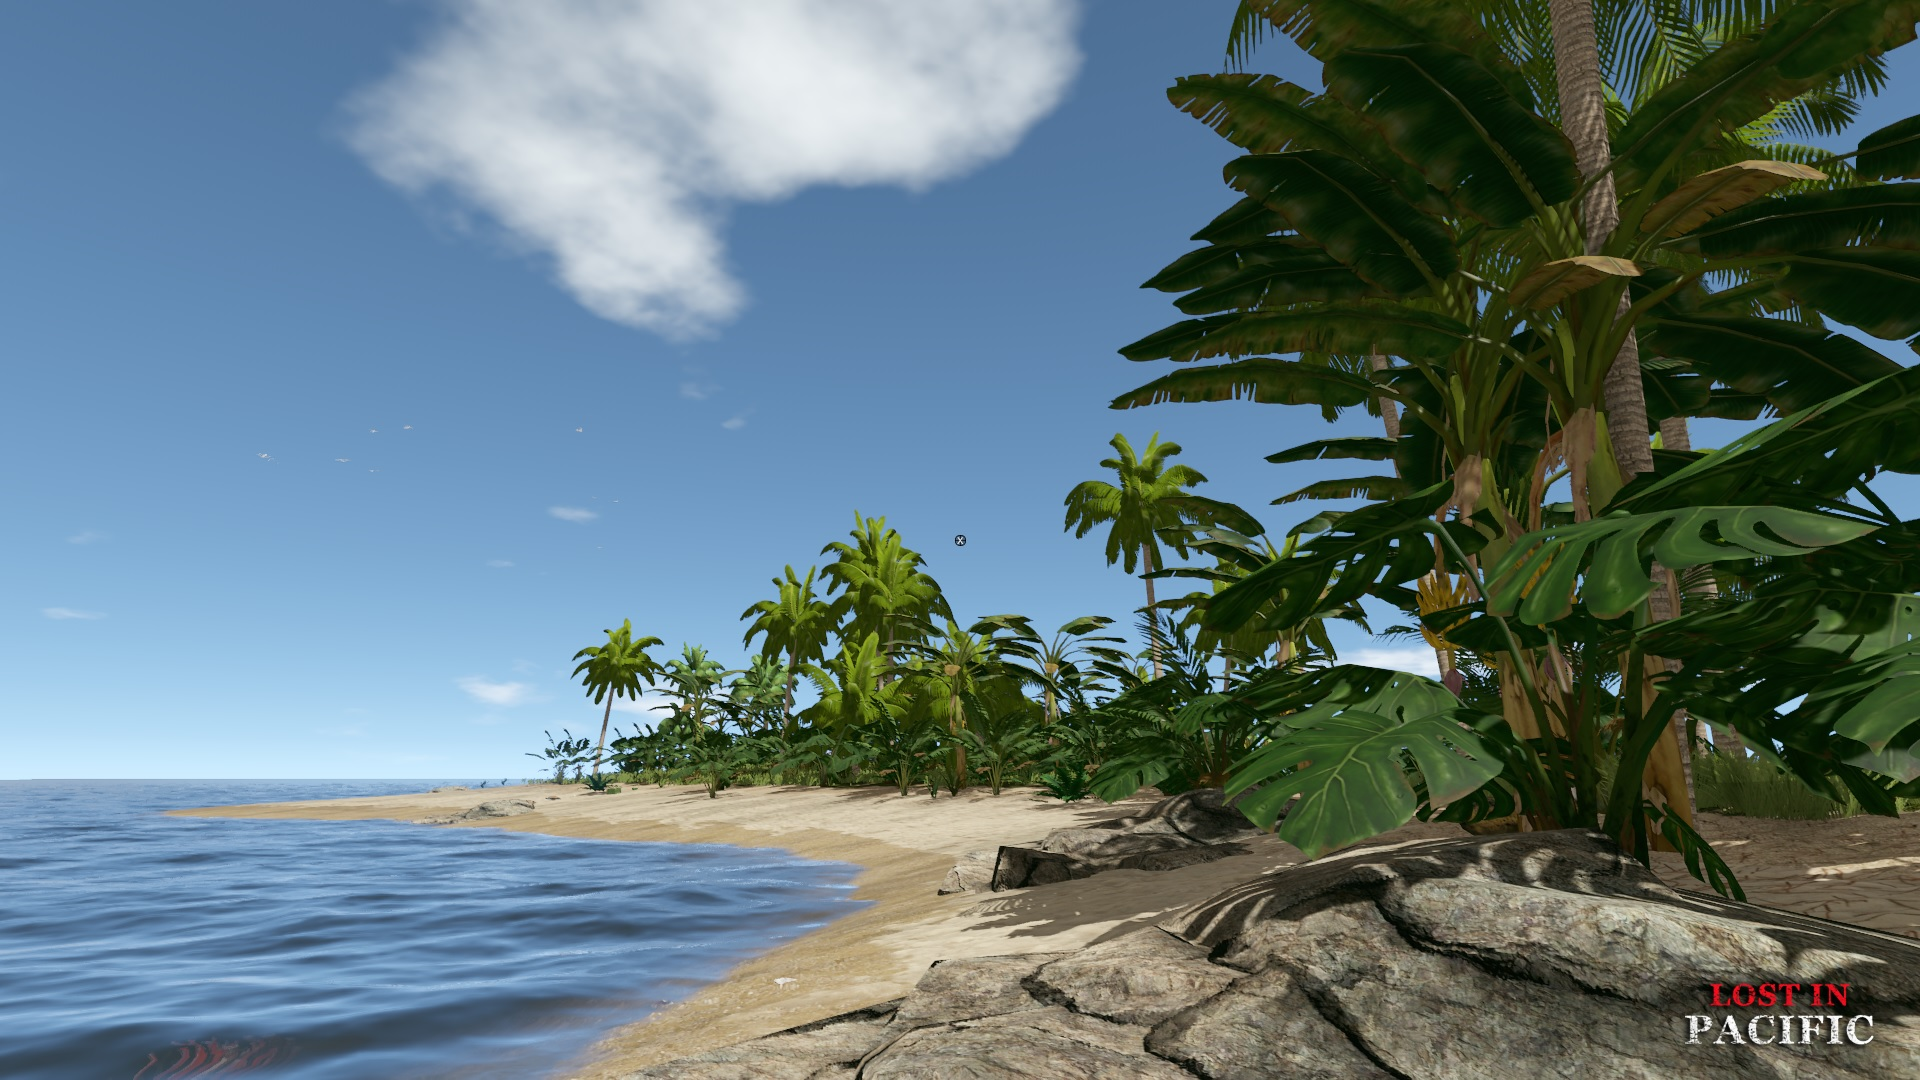 LiP_Screenshot_Island1